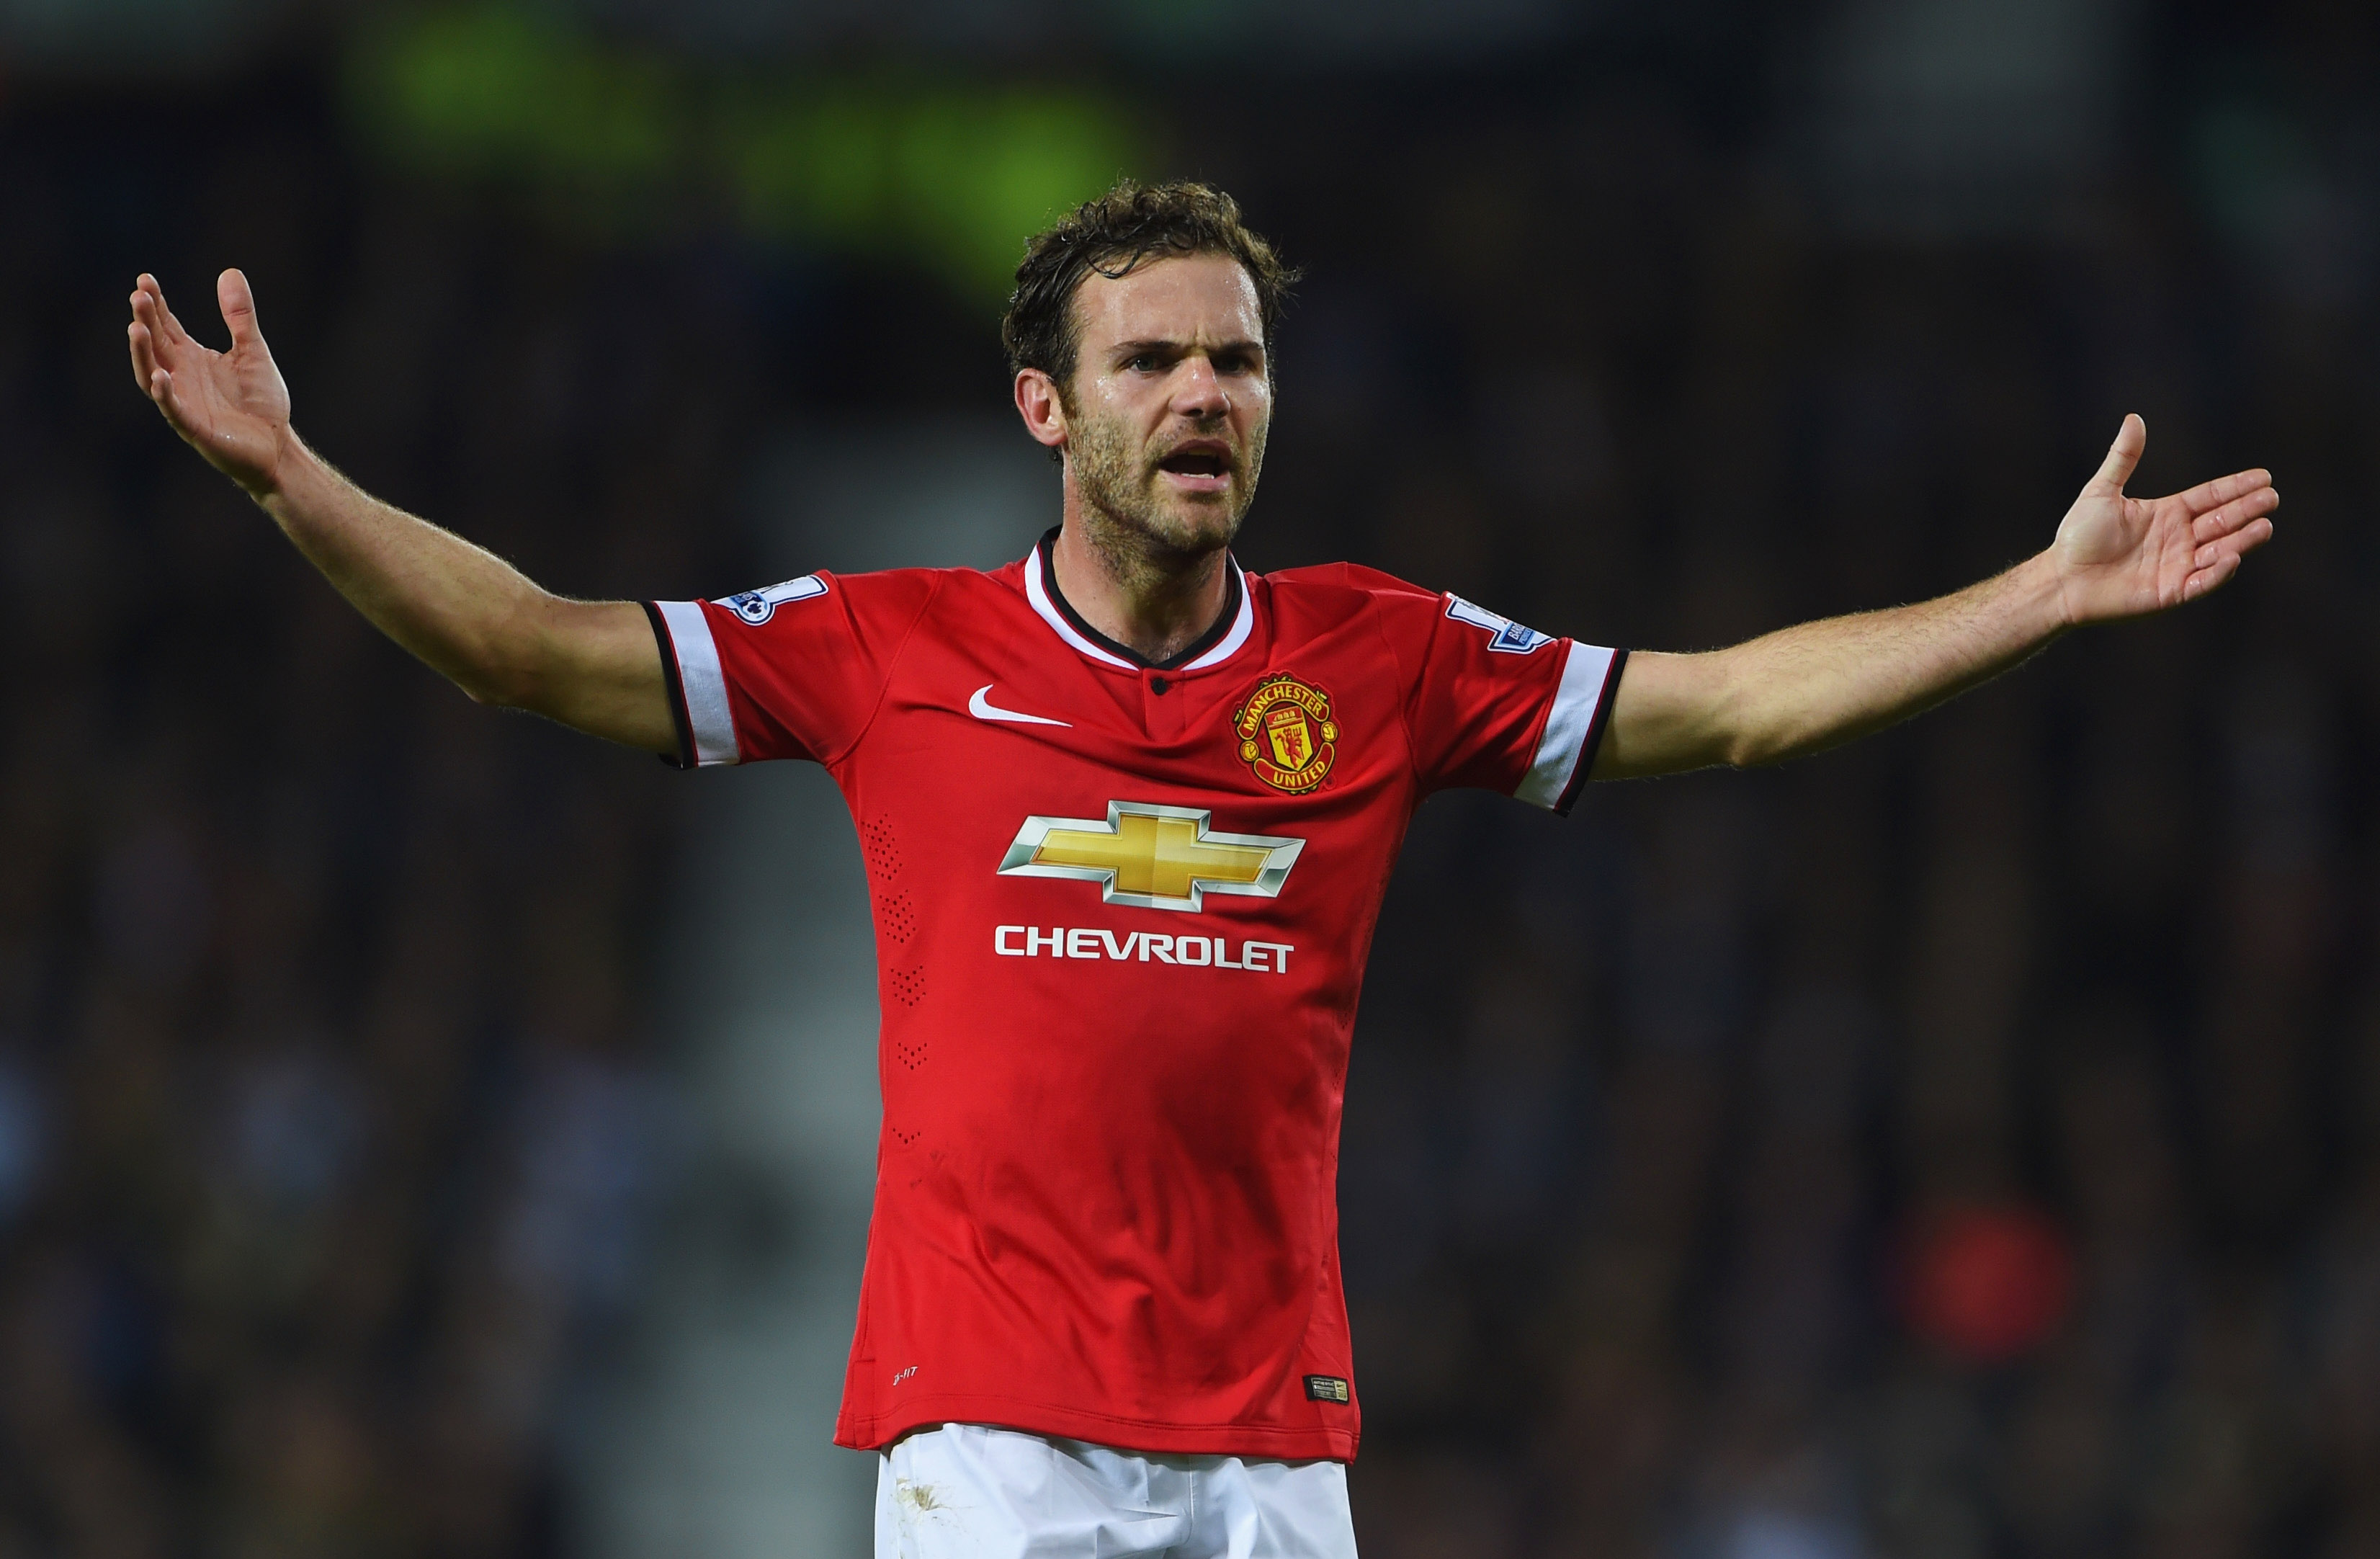 Everton's transfer link with Manchester United's Juan Mata highlights their growing ambition